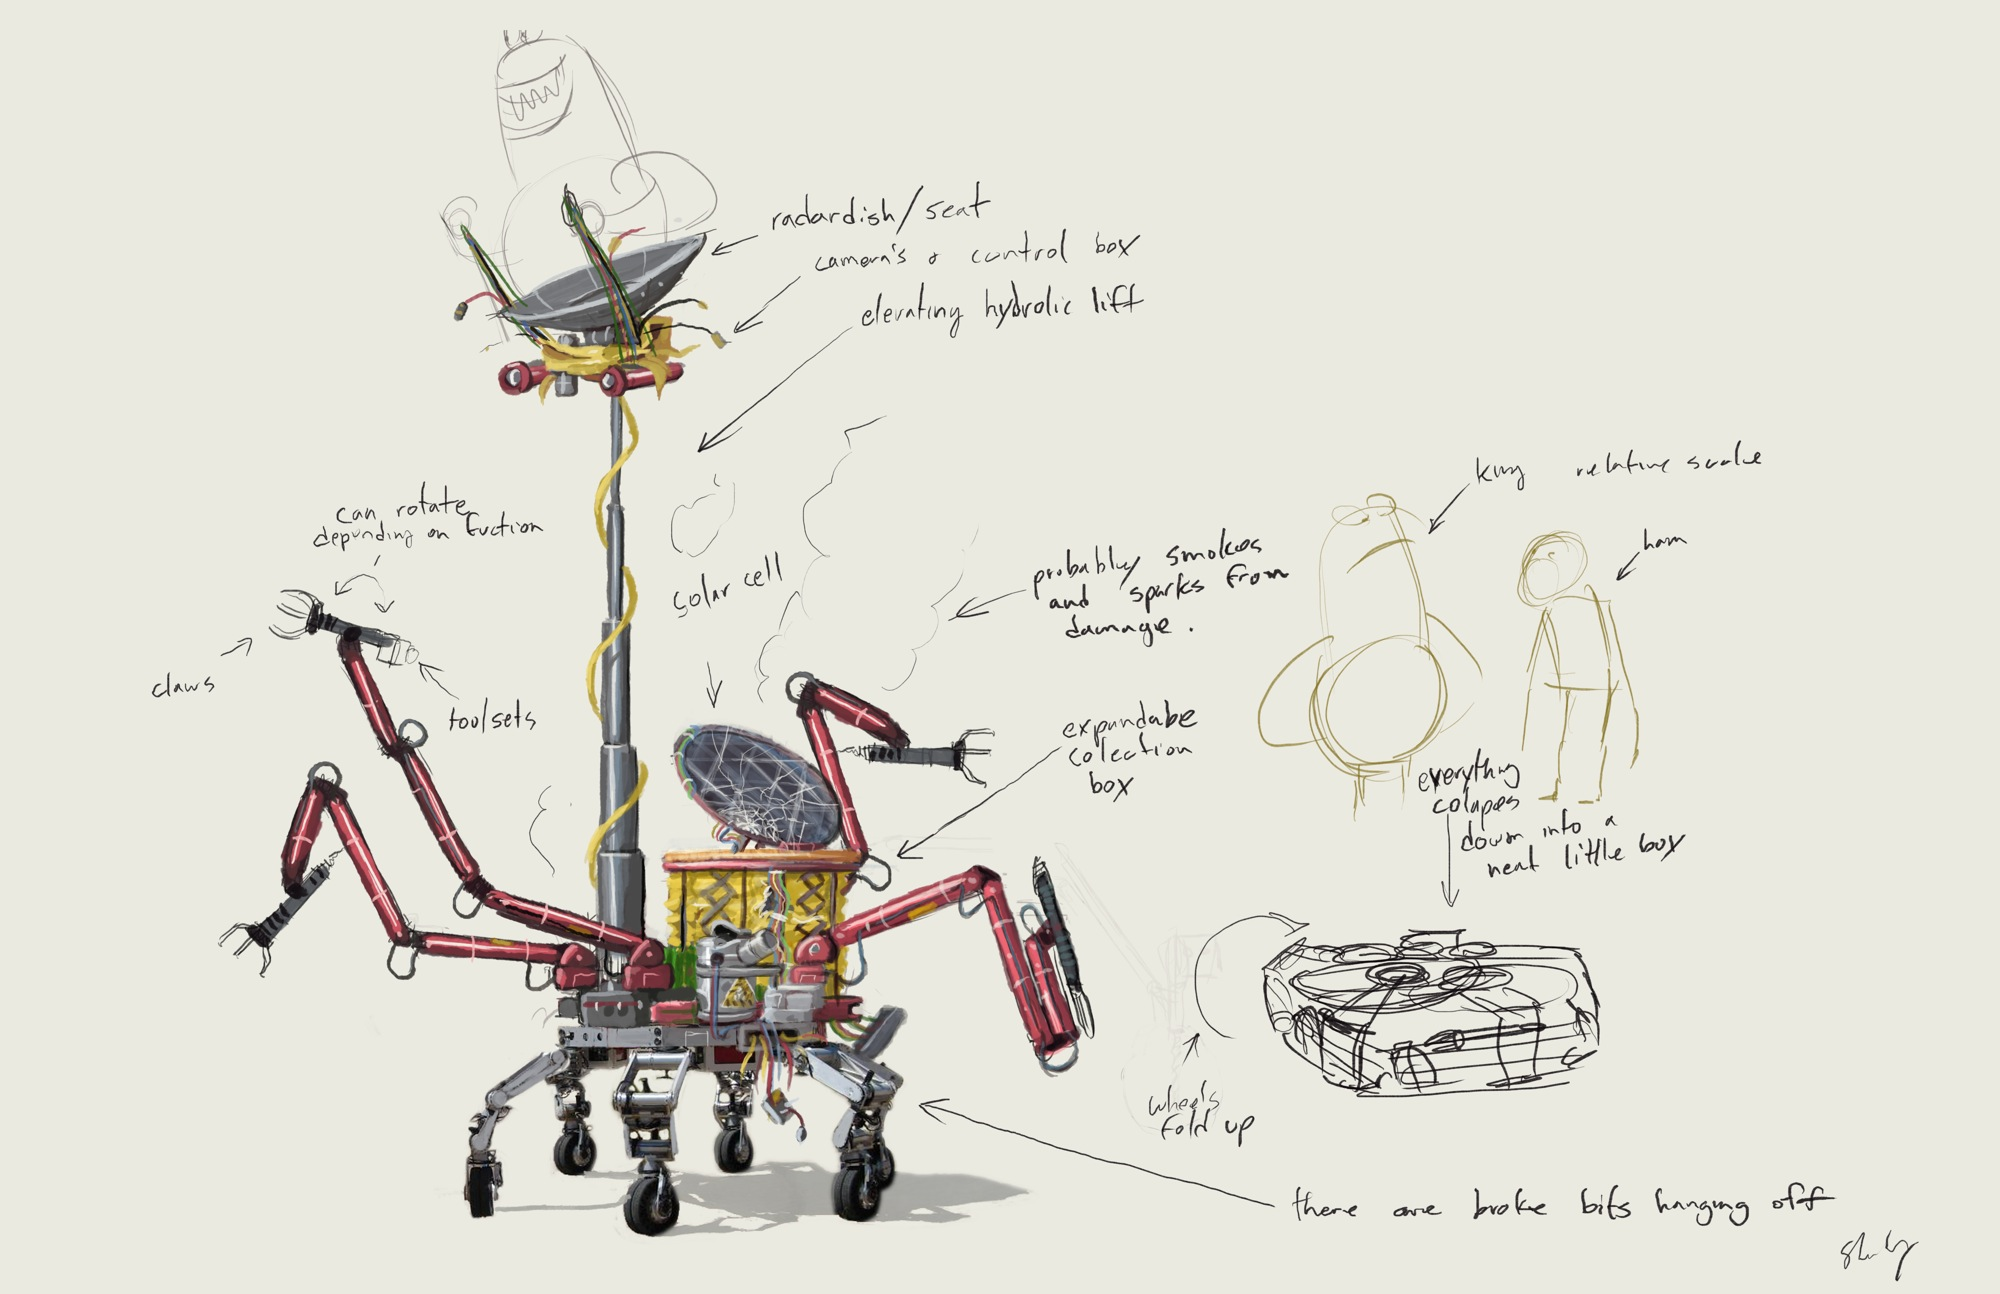 a detailed breakdown of the Chimps rover and all of its parts.